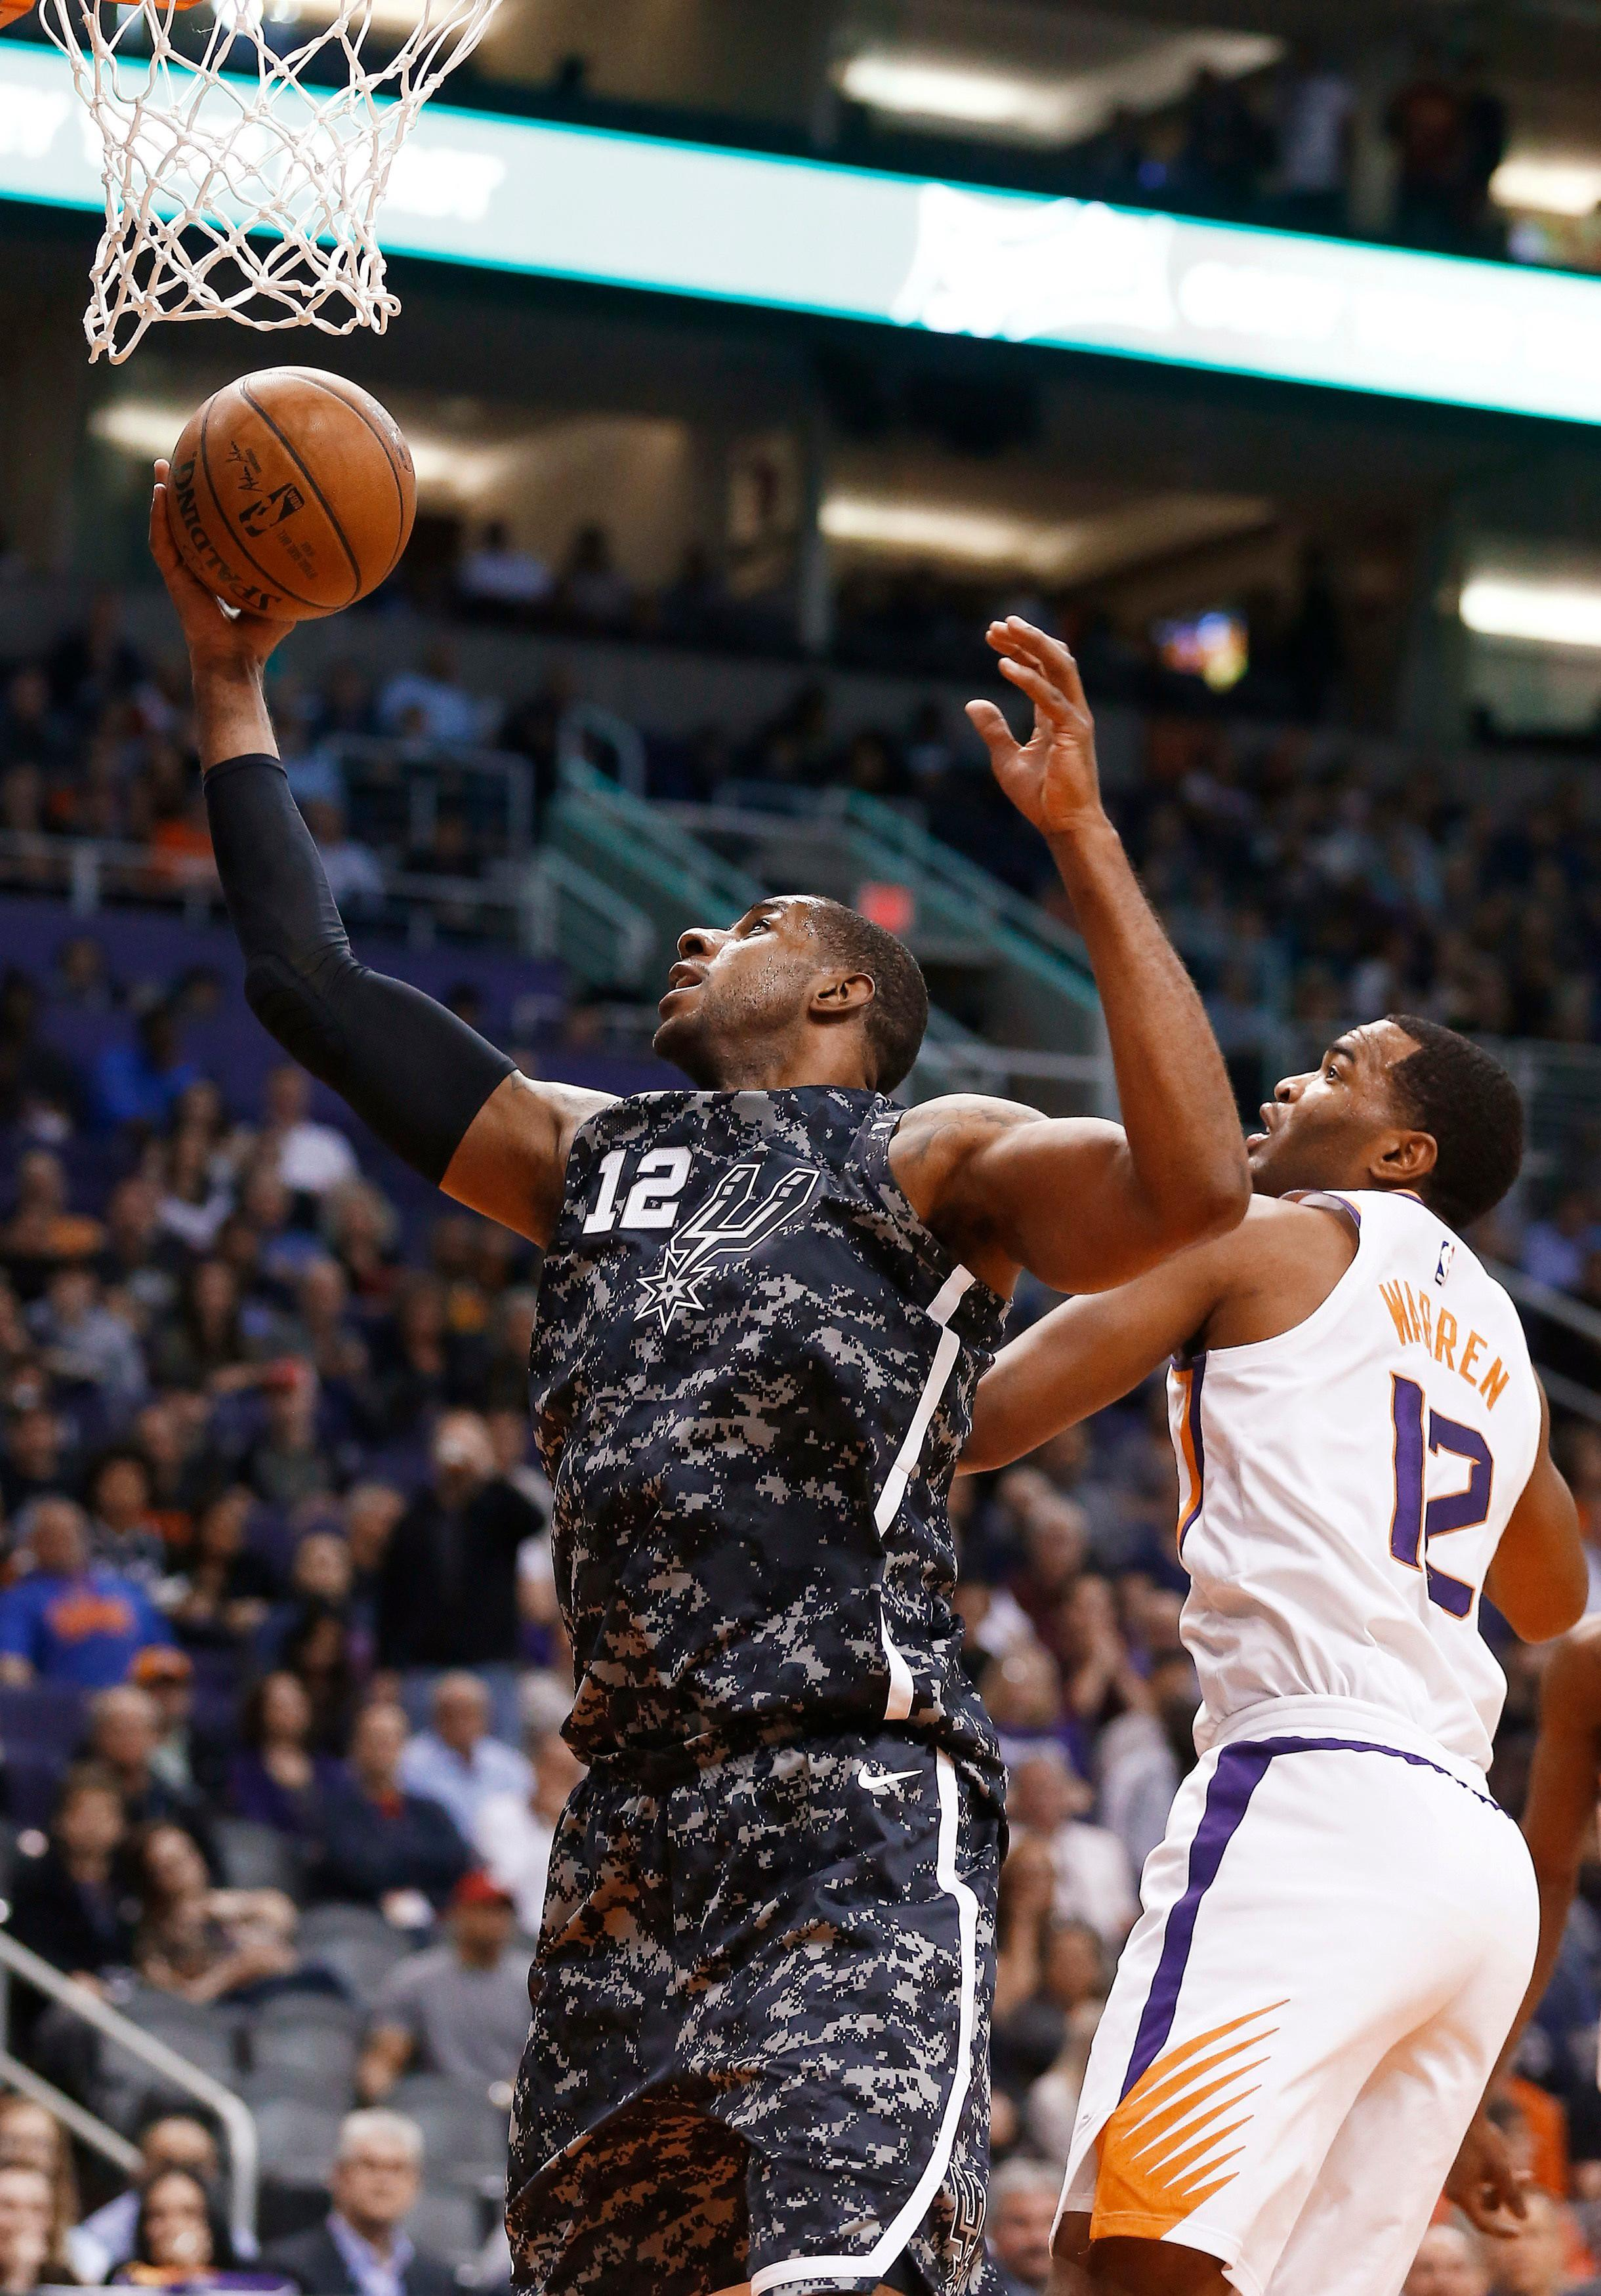 San Antonio Spurs forward LaMarcus Aldridge, left, drives past Phoenix Suns forward TJ Warren, right, to score during the first half of an NBA basketball game Wednesday, Feb. 7, 2018, in Phoenix. (AP Photo/Ross D. Franklin)